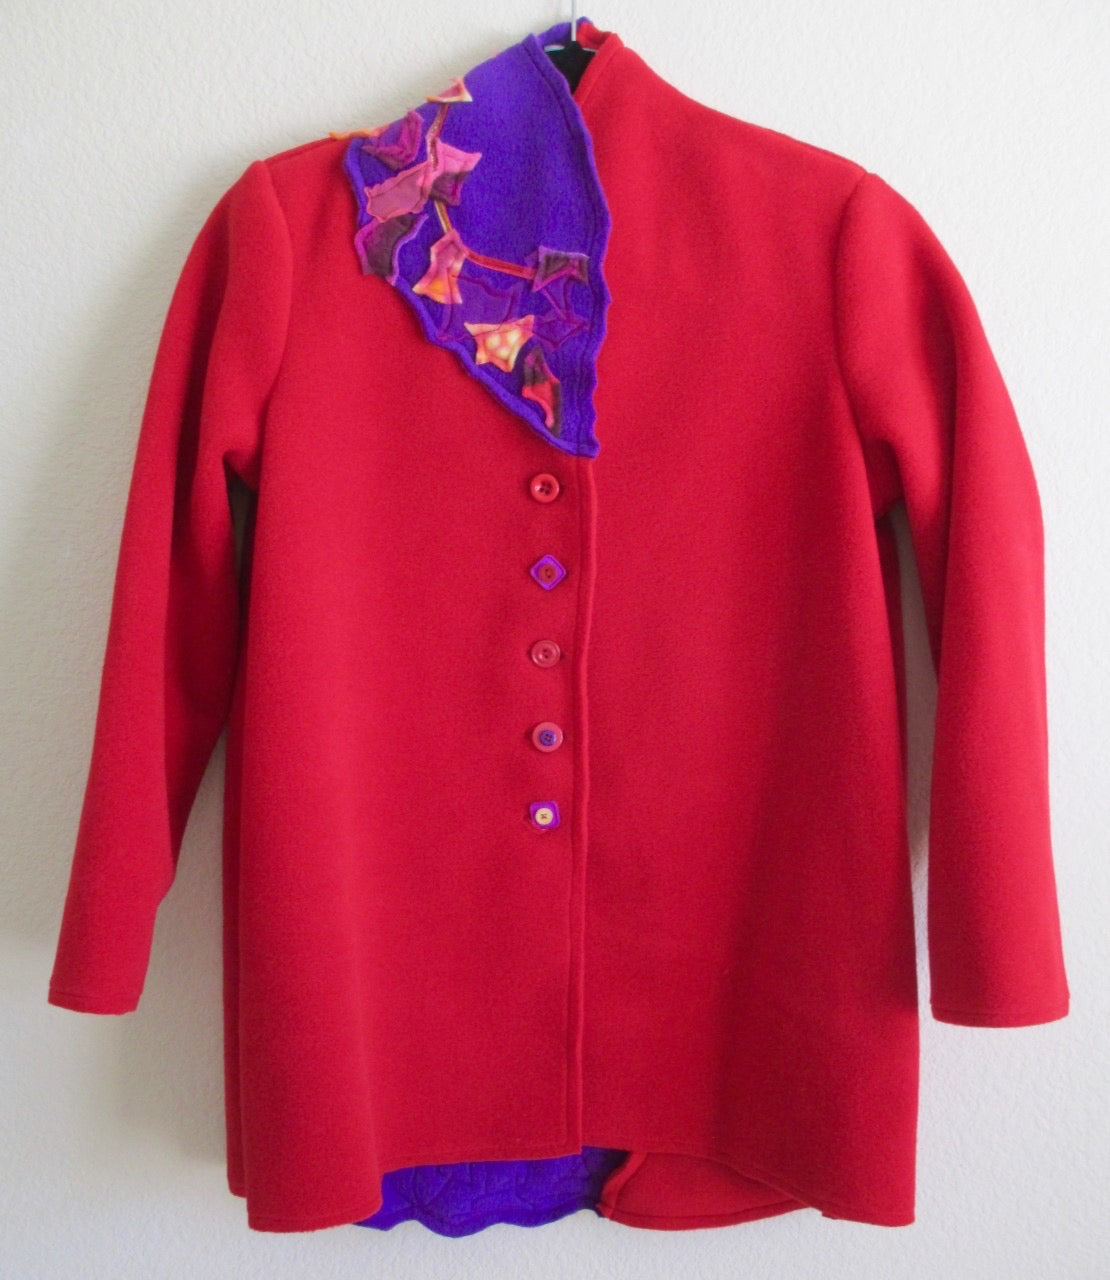 Michele Judge L1 Liana Applique with Printed Fleece, Netting and Ribbon in Red in Size S on Sale